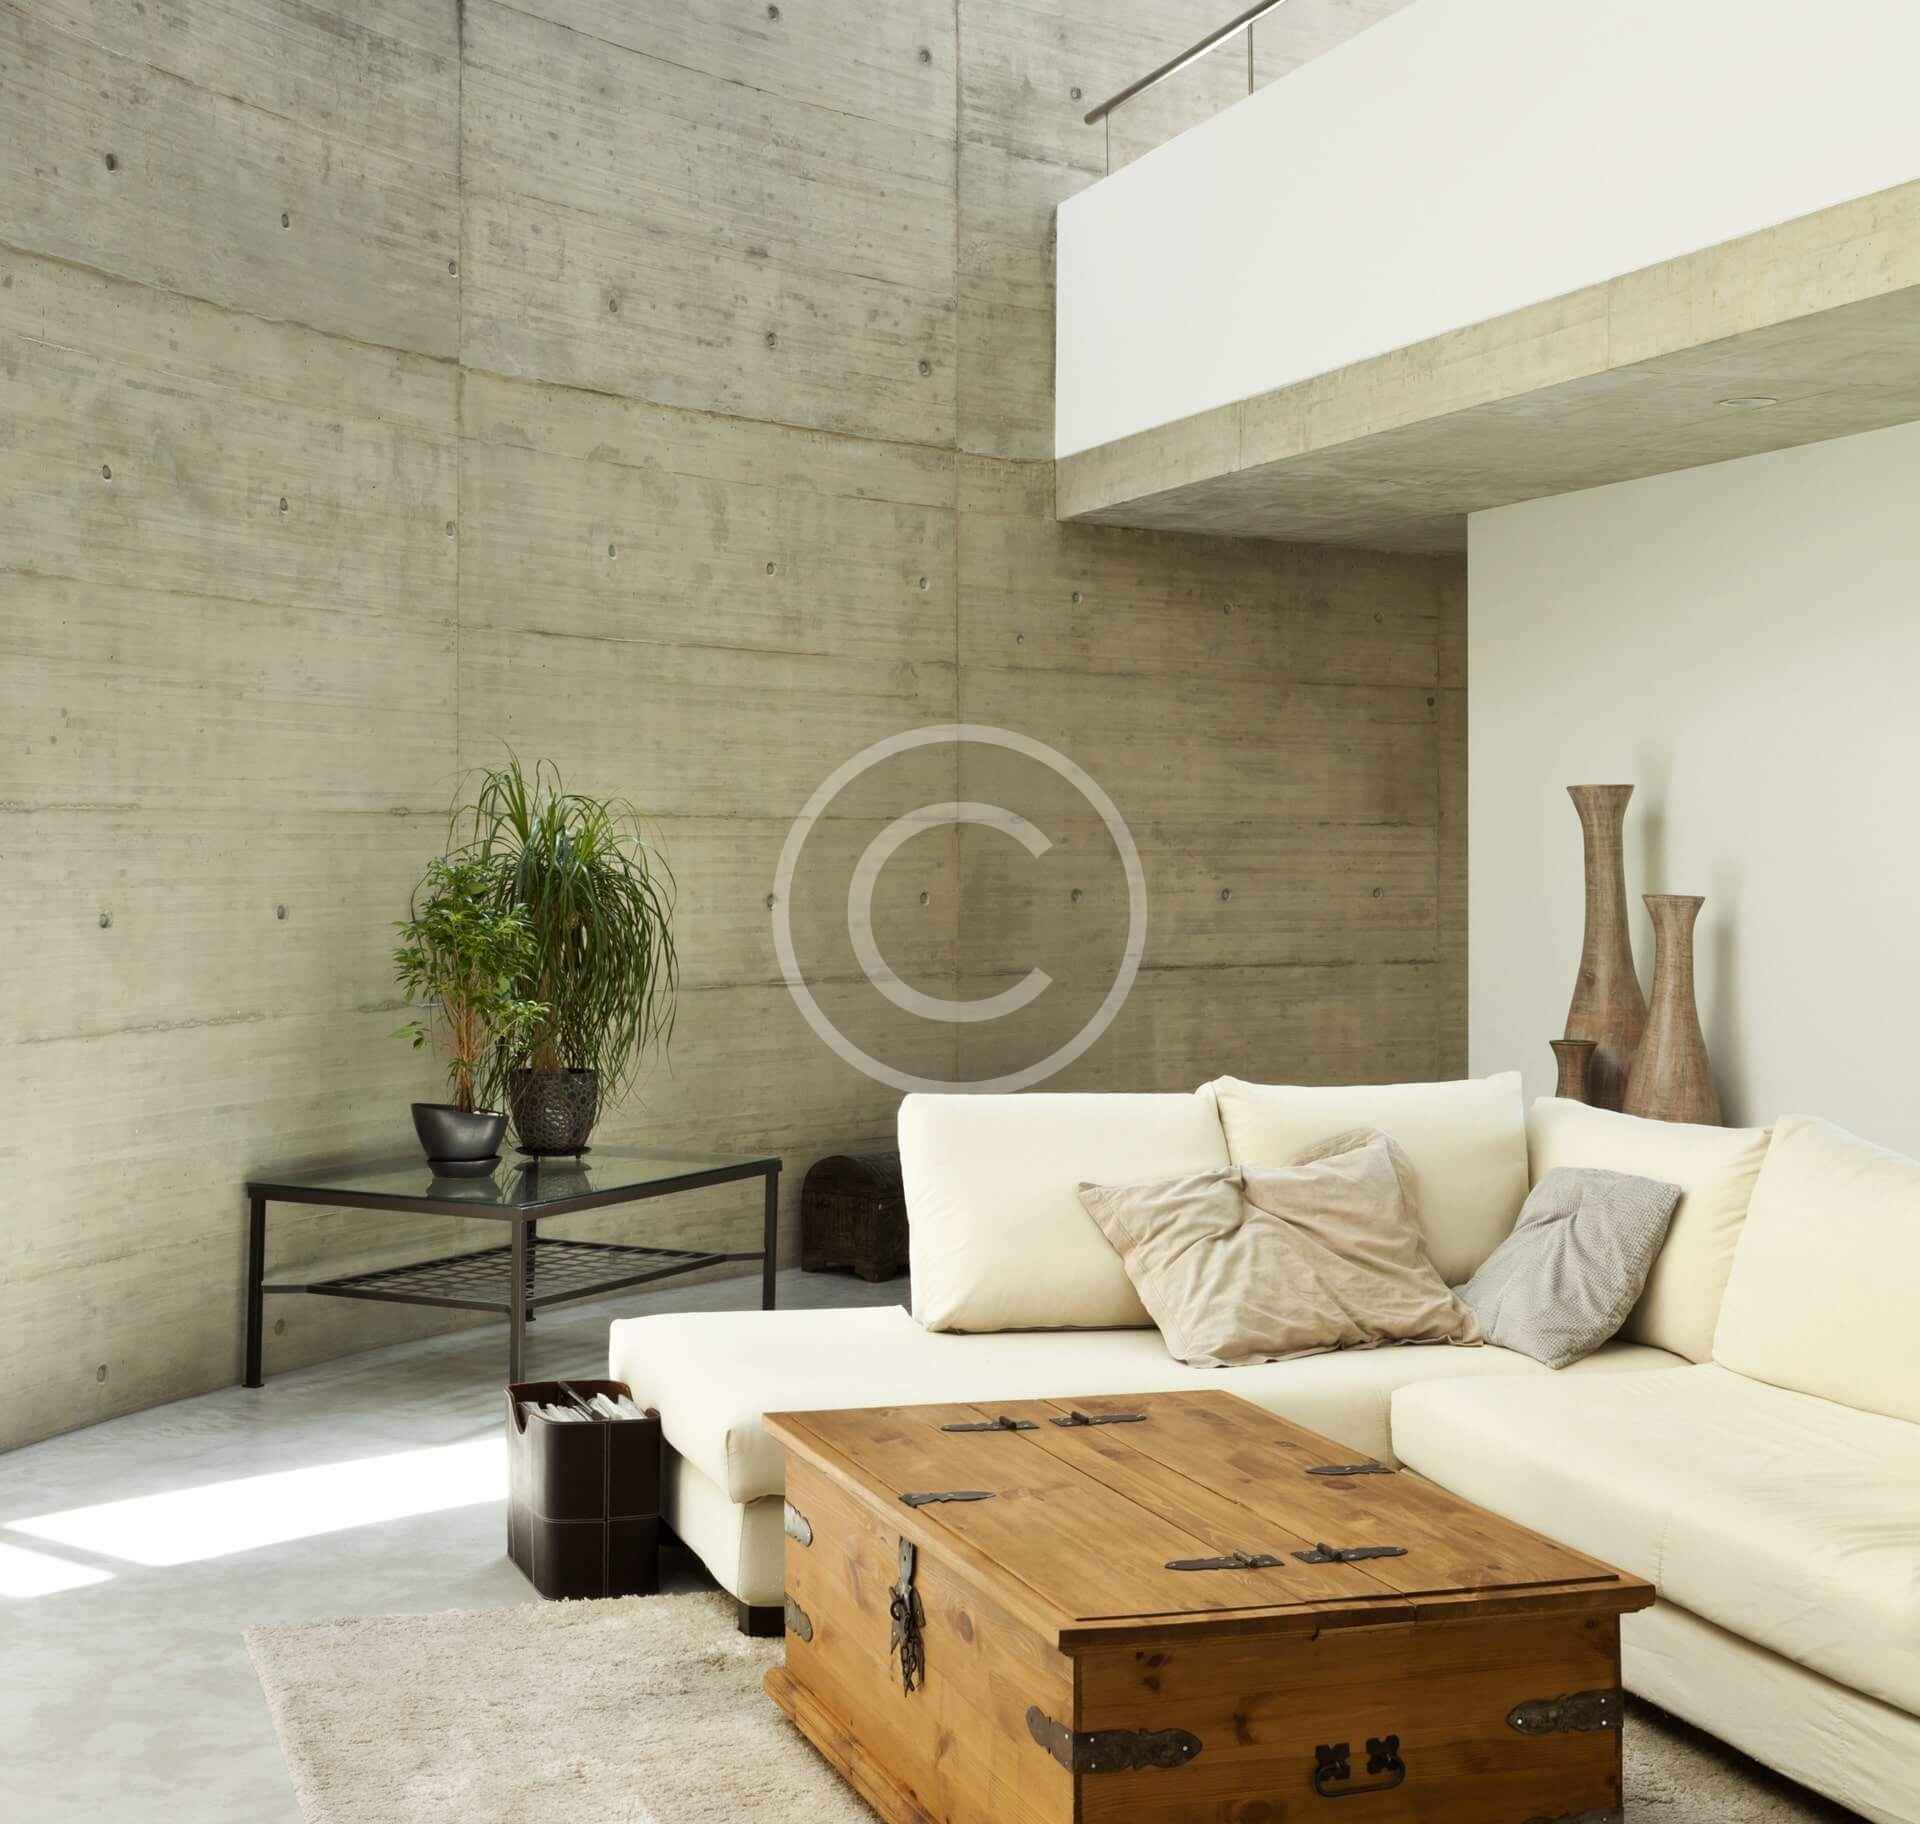 Colors & Textures in Interior